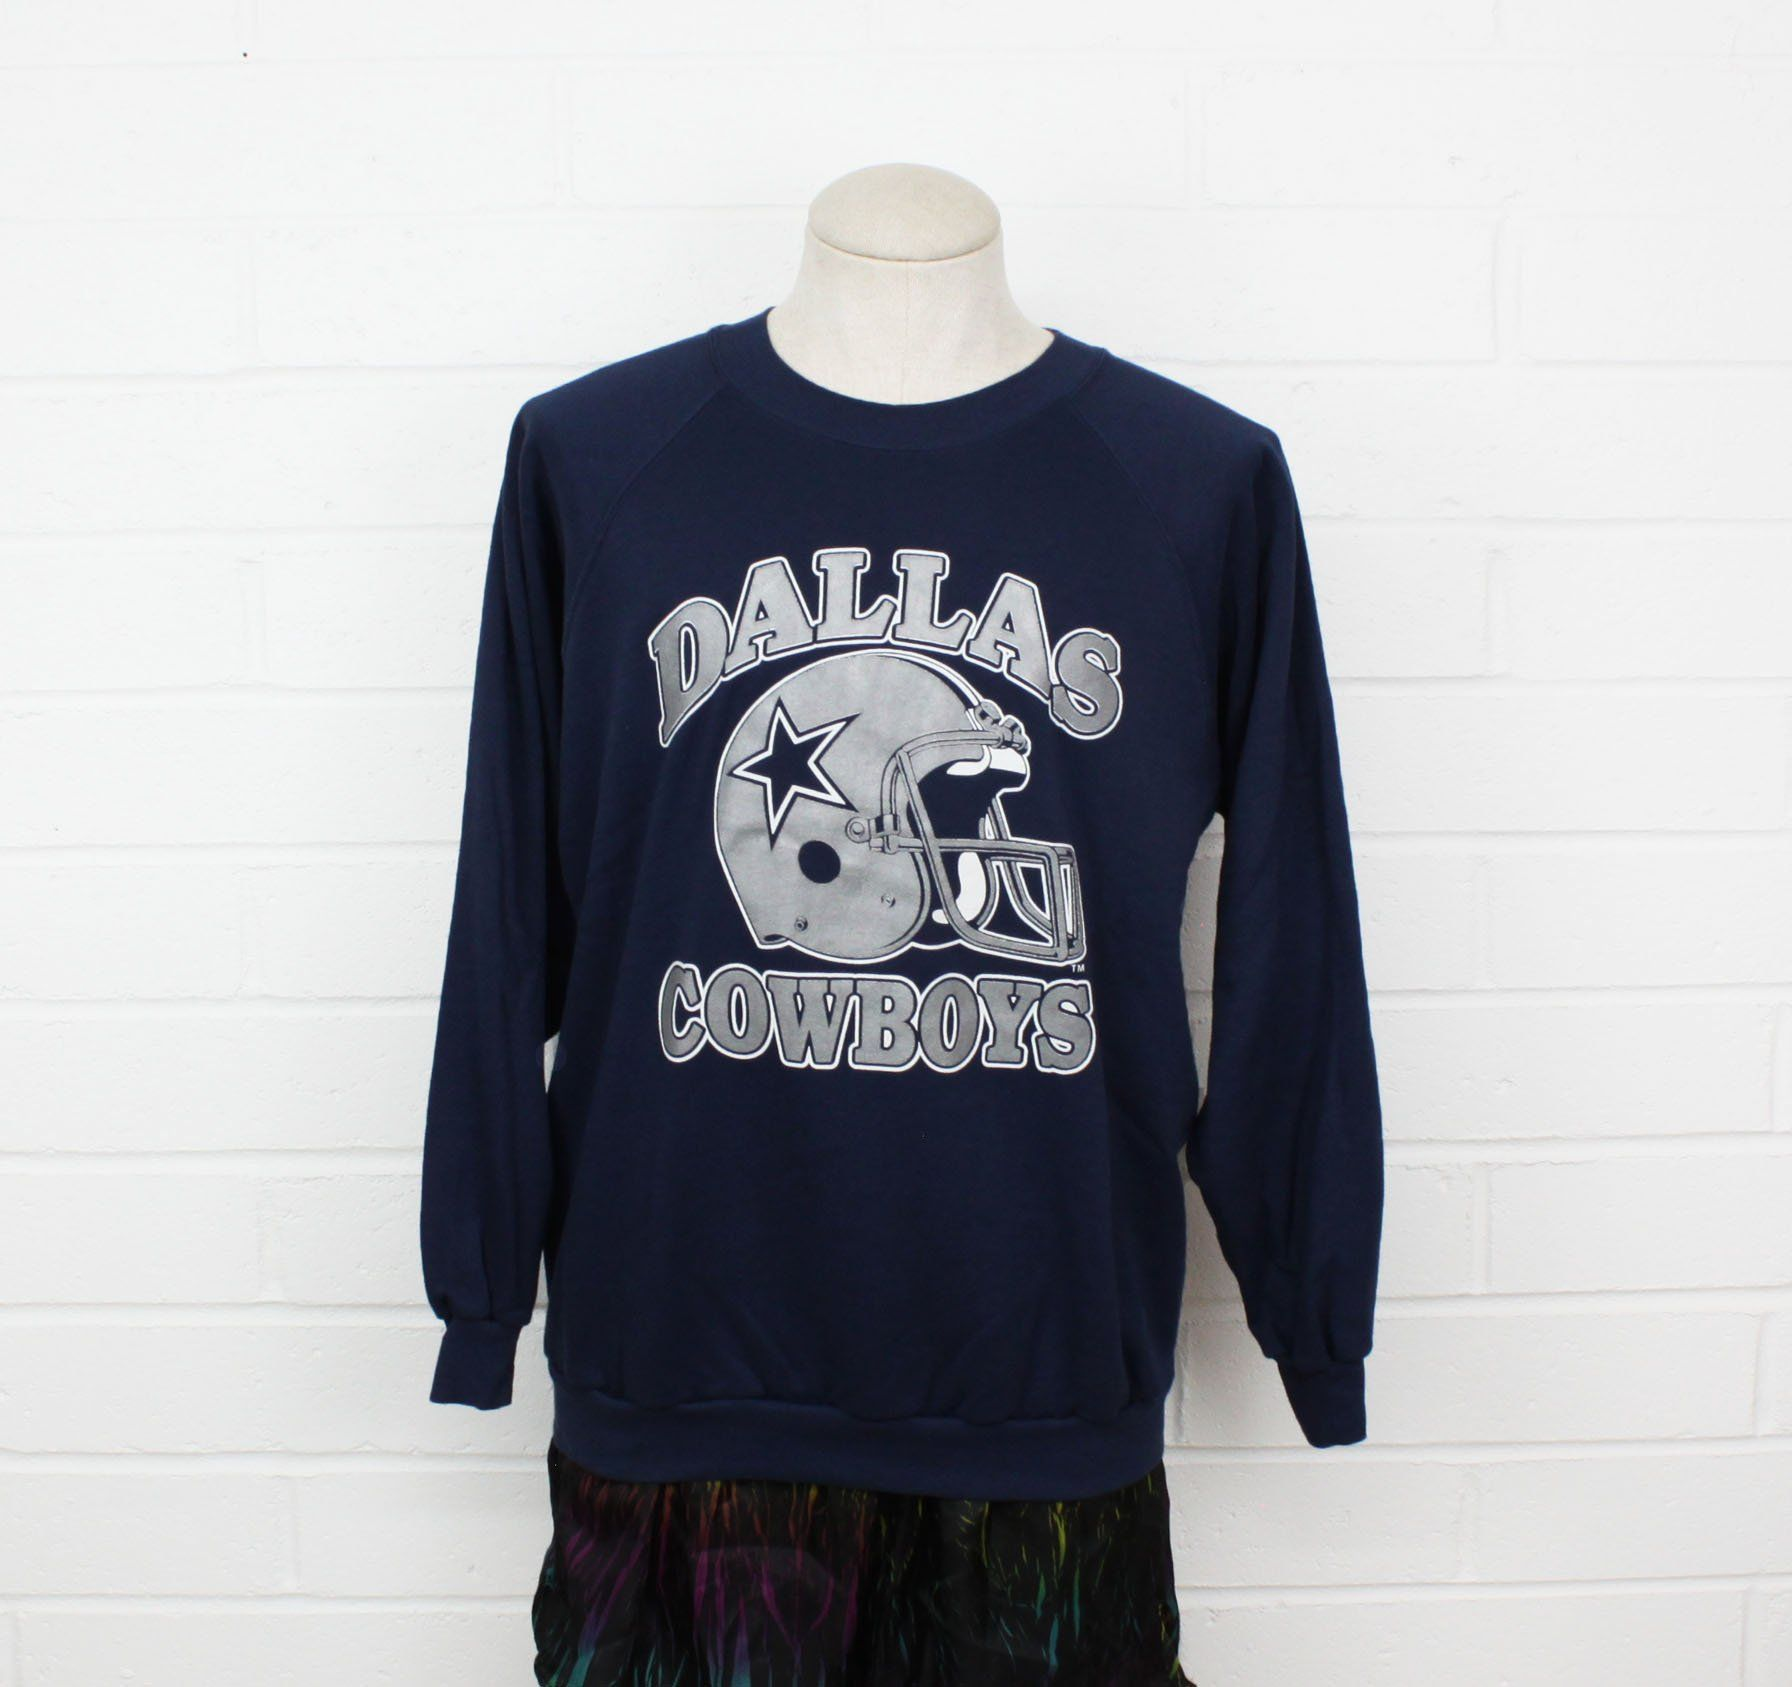 3e0d3b79 Vintage 80s Dallas Cowboys Sweatshirt Large Navy Blue NFL Football ...